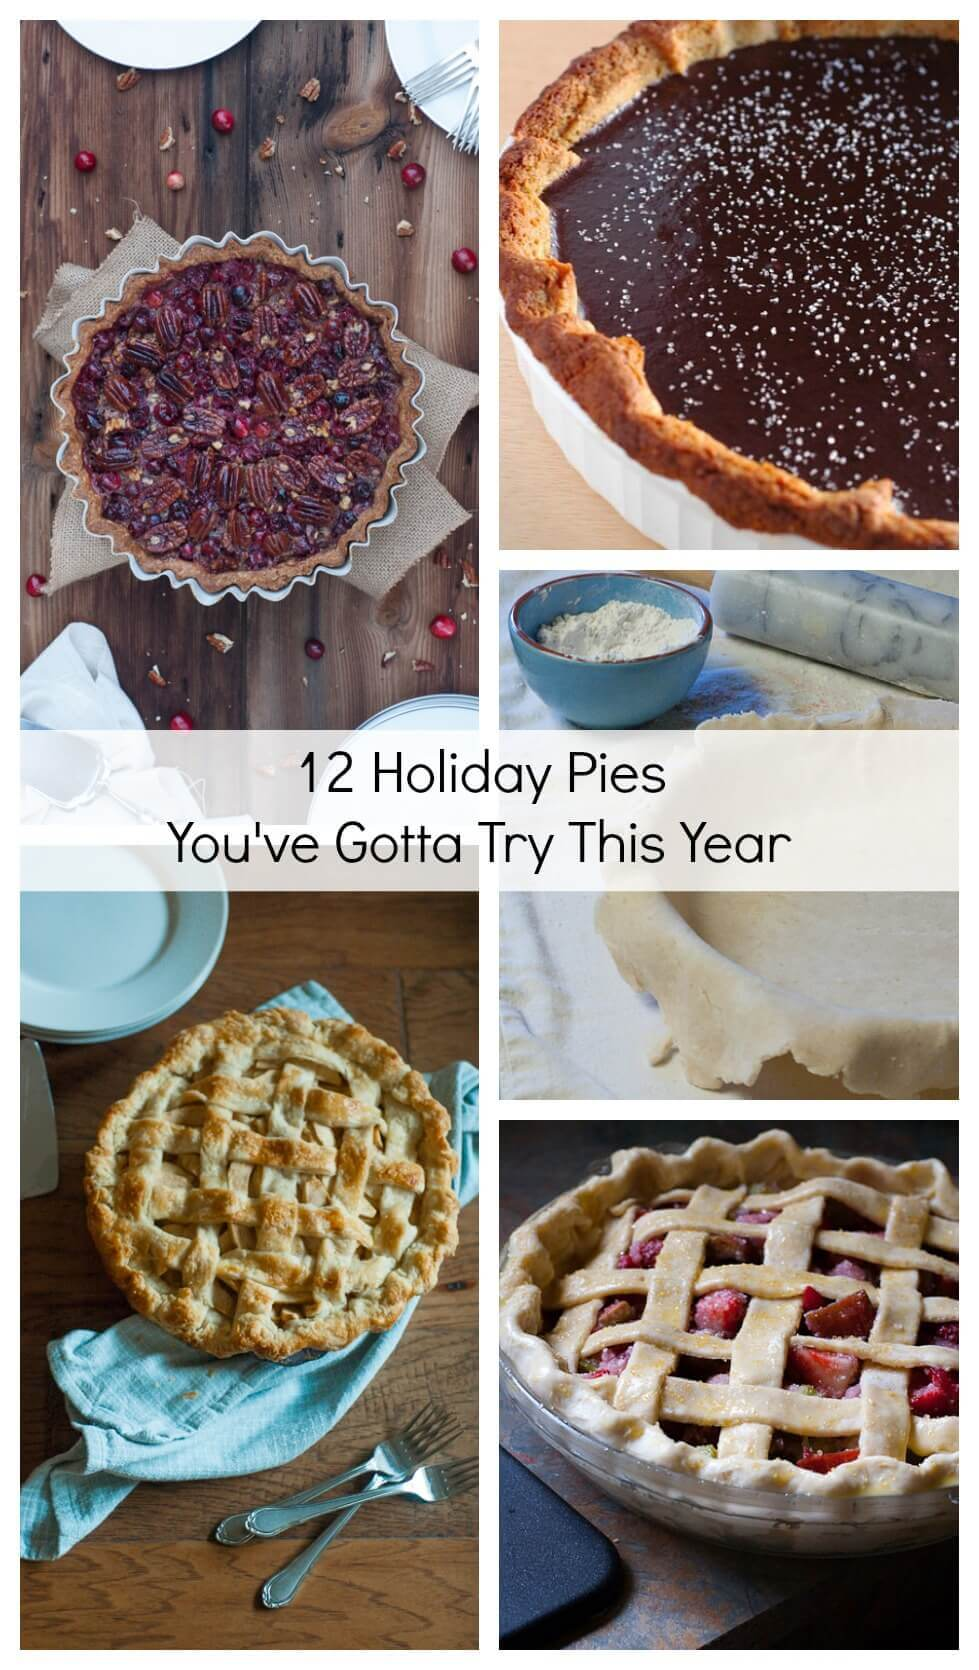 12 Holiday Pies You've Gotta Try This Year. Need a little Thanksgiving pie inspiration?  We've got you covered from crust to filling with lots of new tastes and twists on the classics.